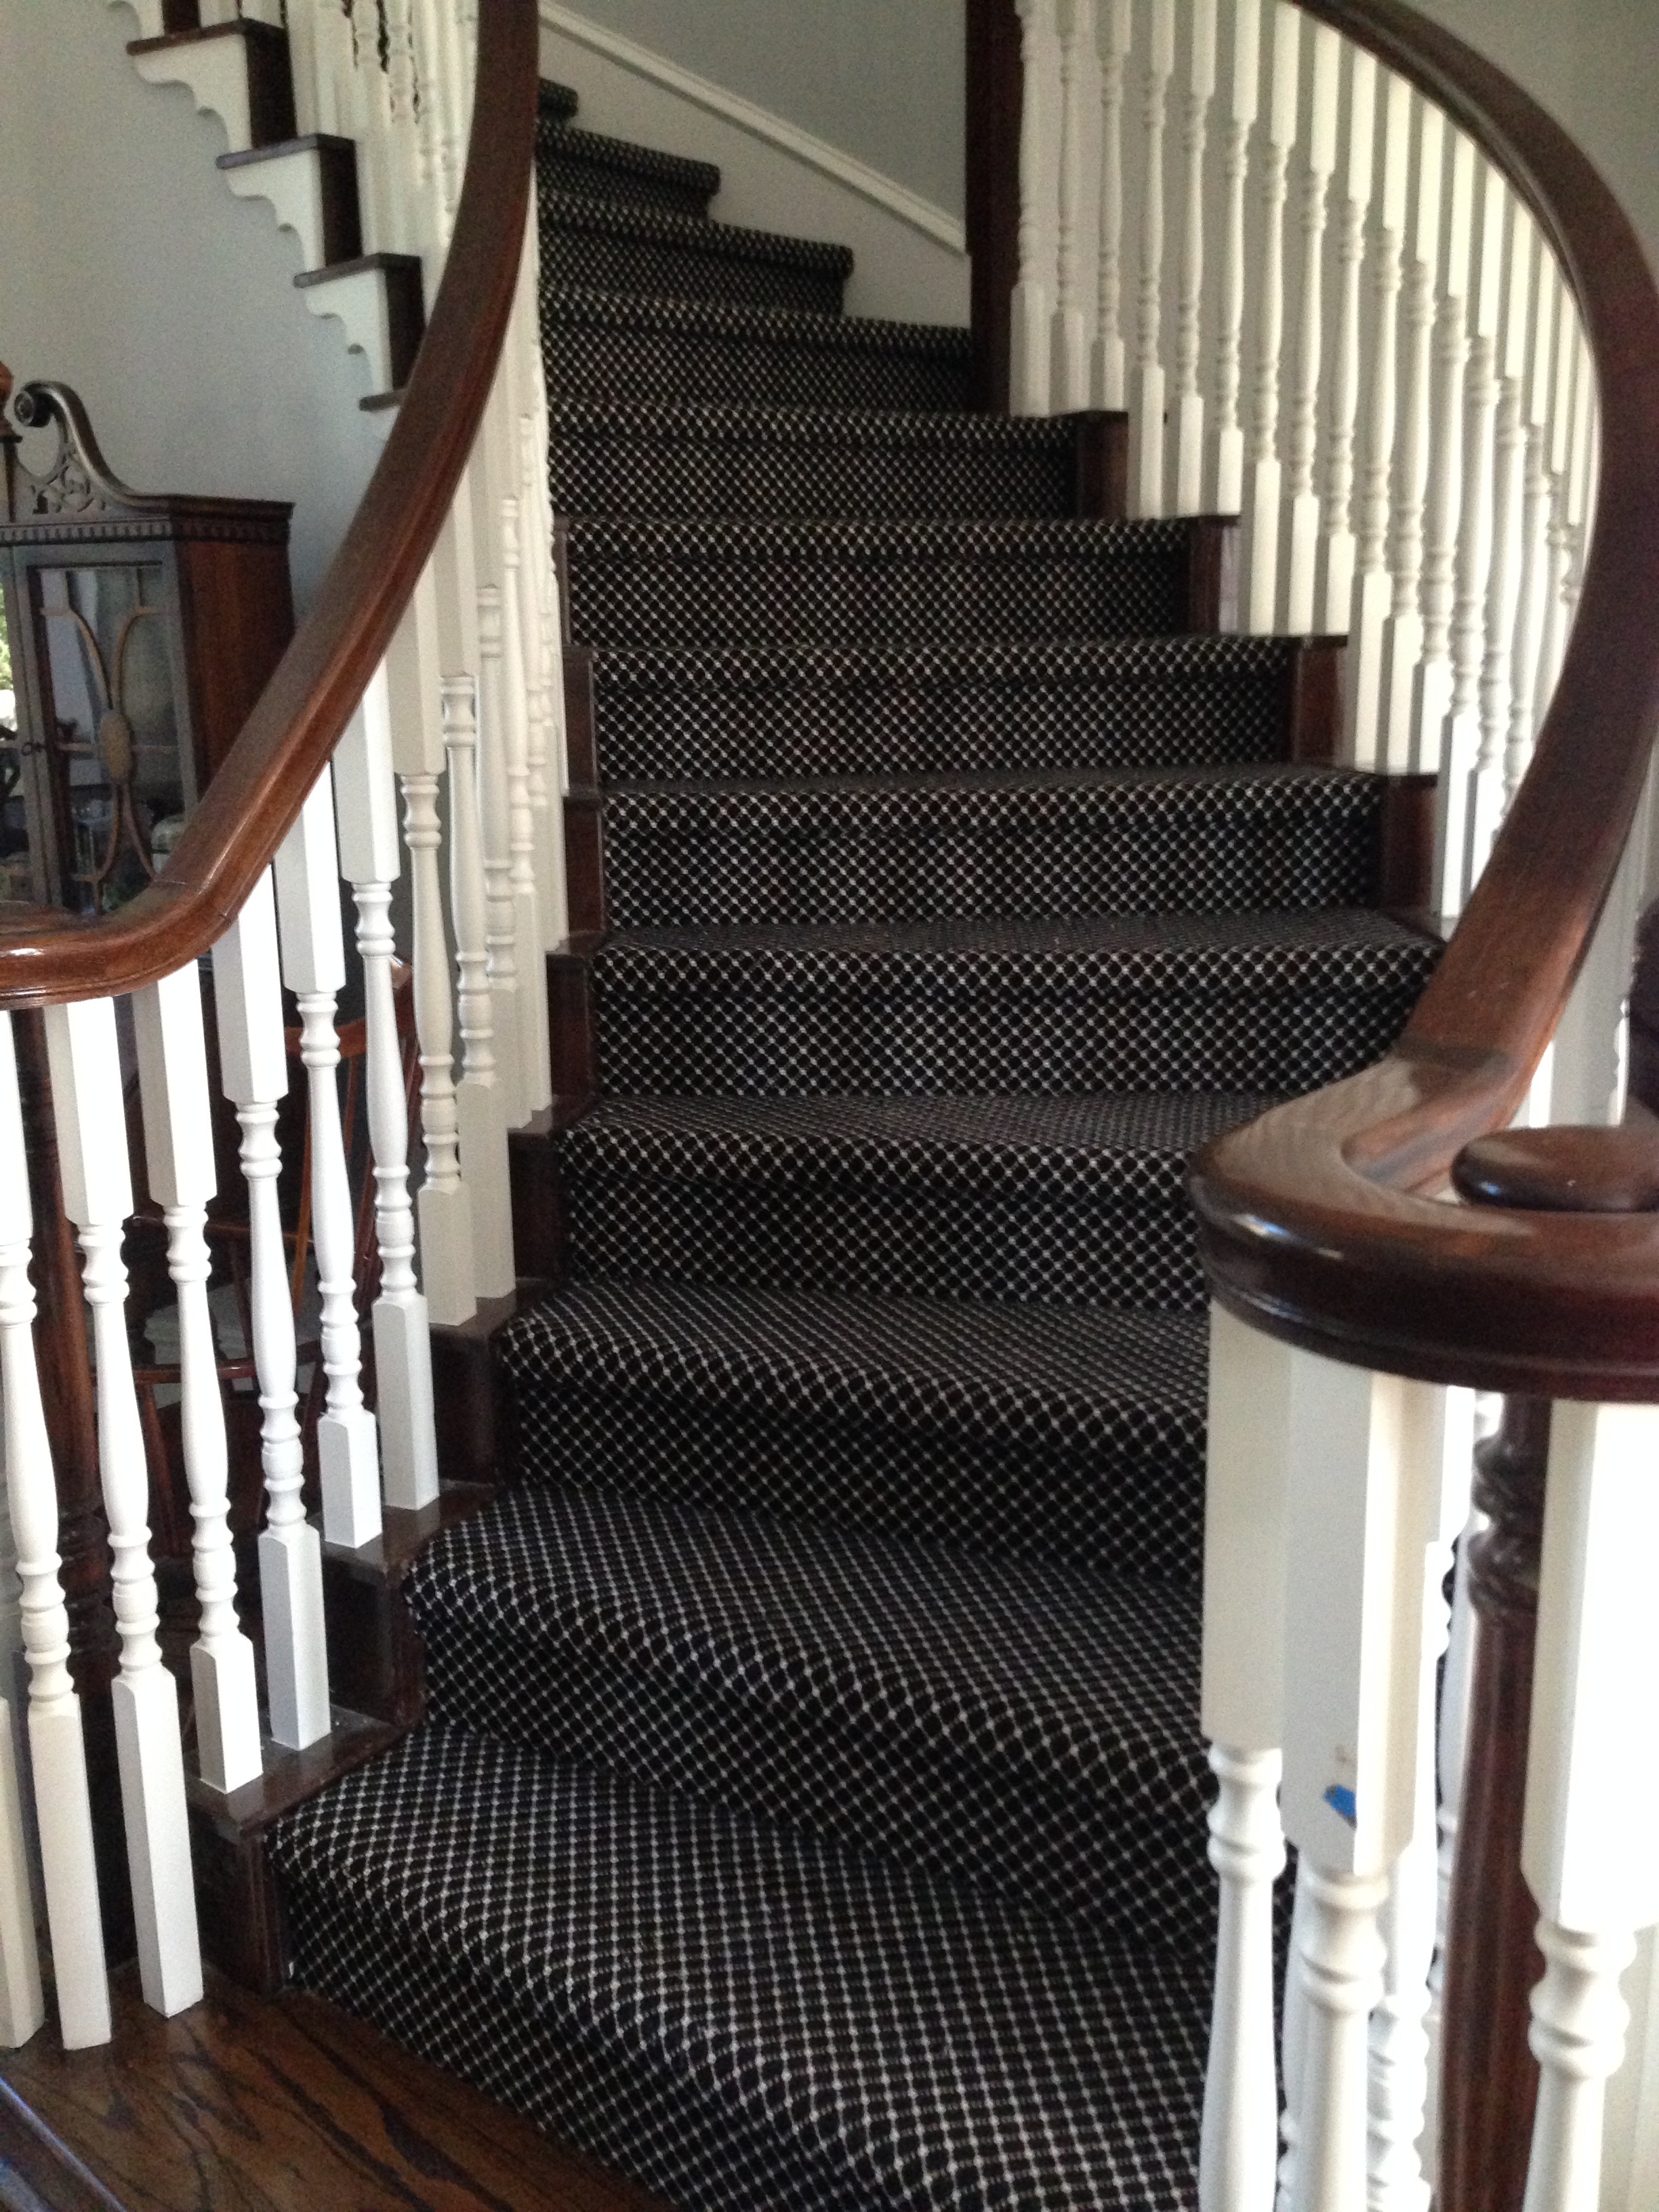 Should I Carpet My Stairs With The Same Carpet I Use Upstairs | Redoing Carpeted Stairs To Wood | Hardwood Floors | Stair Tread | Stair Risers | Stair Case | Staircase Remodel